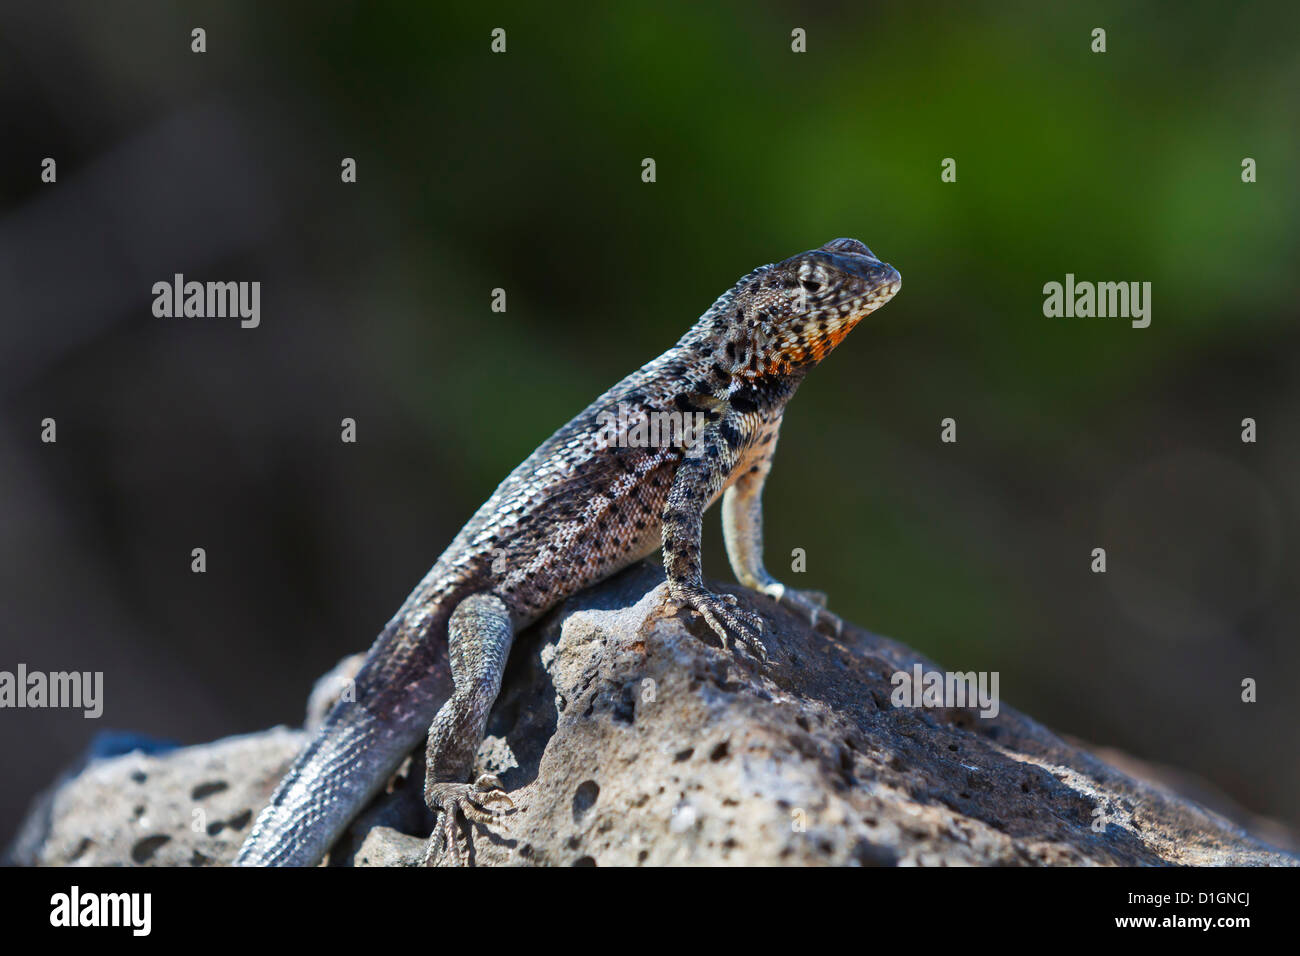 Lava lizard (Microlophus spp), Santa Cruz Island, Galapagos Islands, UNESCO World Heritage Site, Ecuador, South - Stock Image